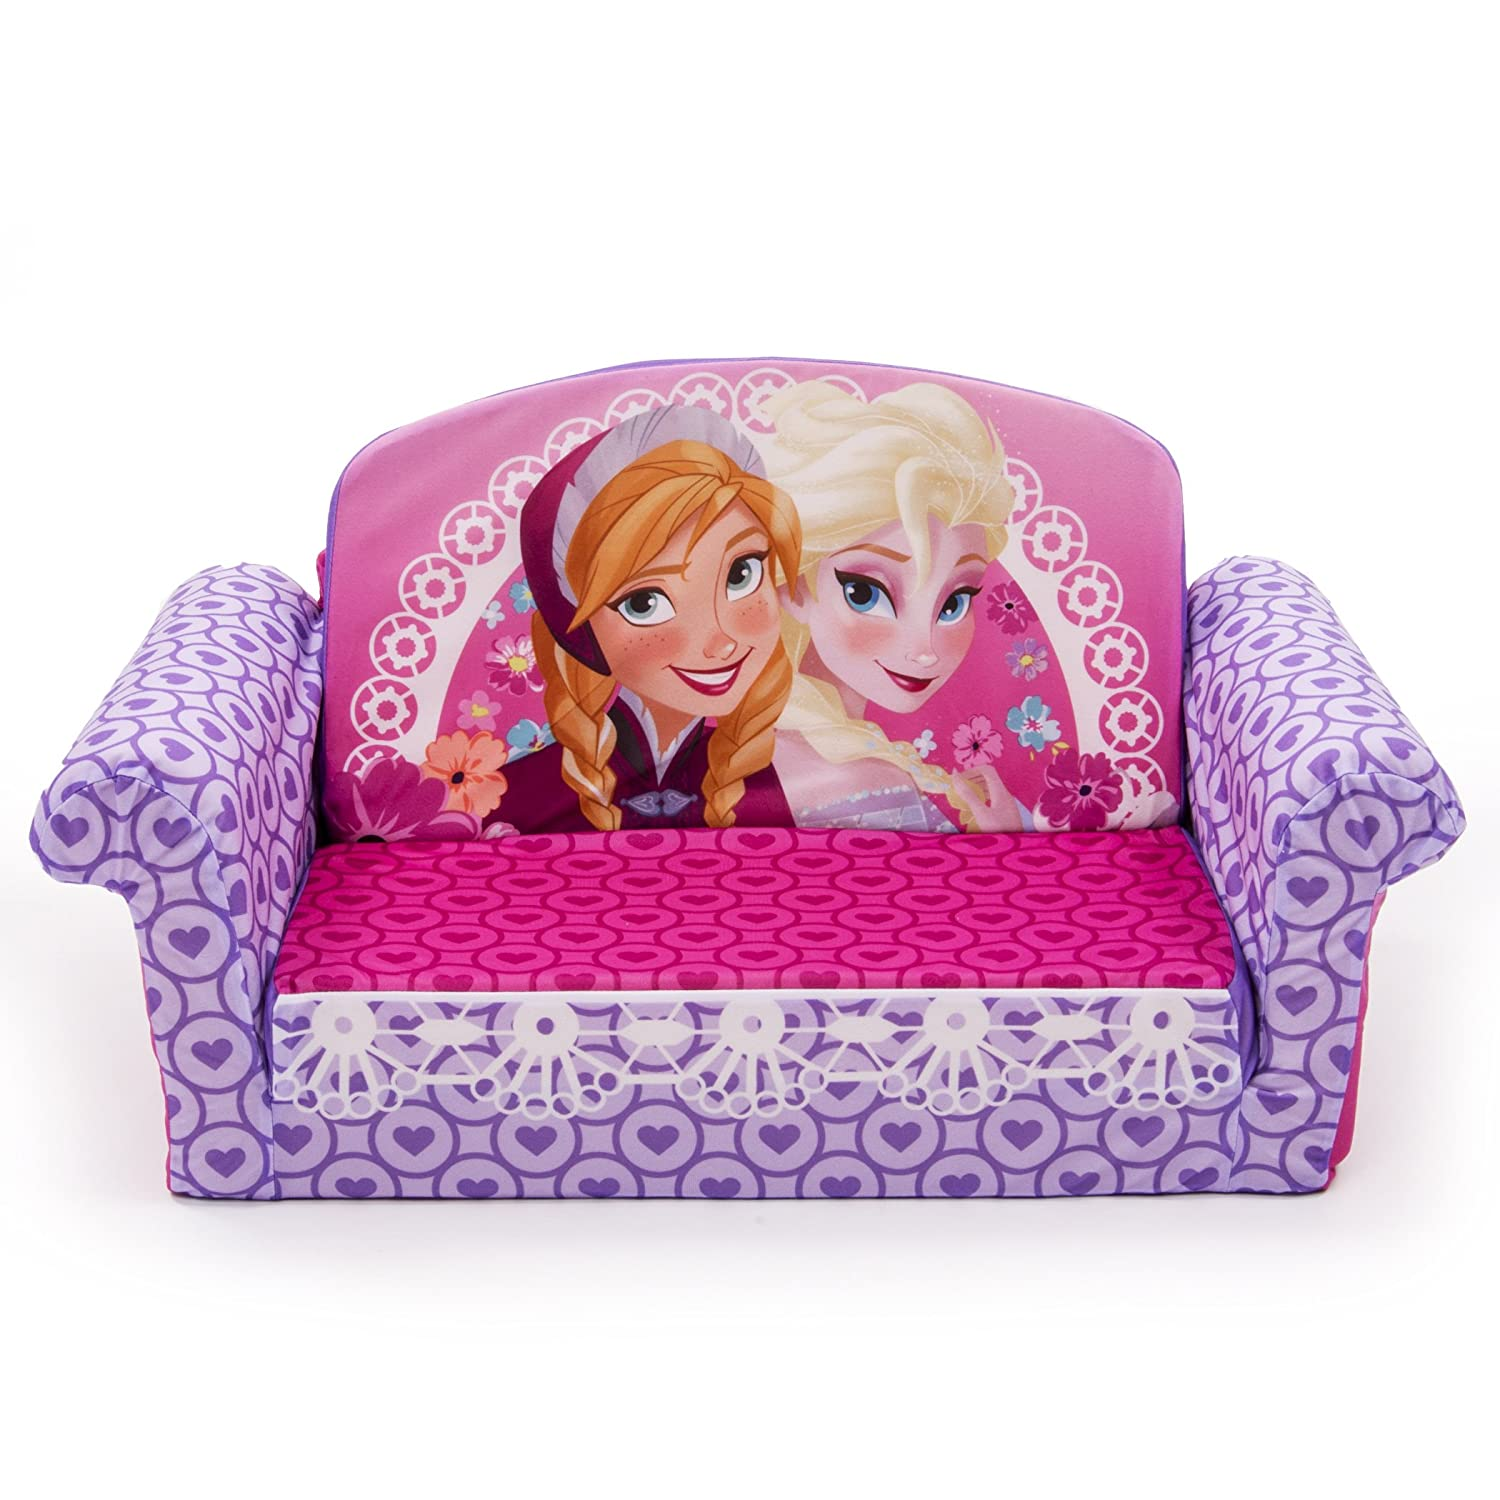 Pink and Purple Kid Sized Sofa for Girls' Bedroom or Playroom